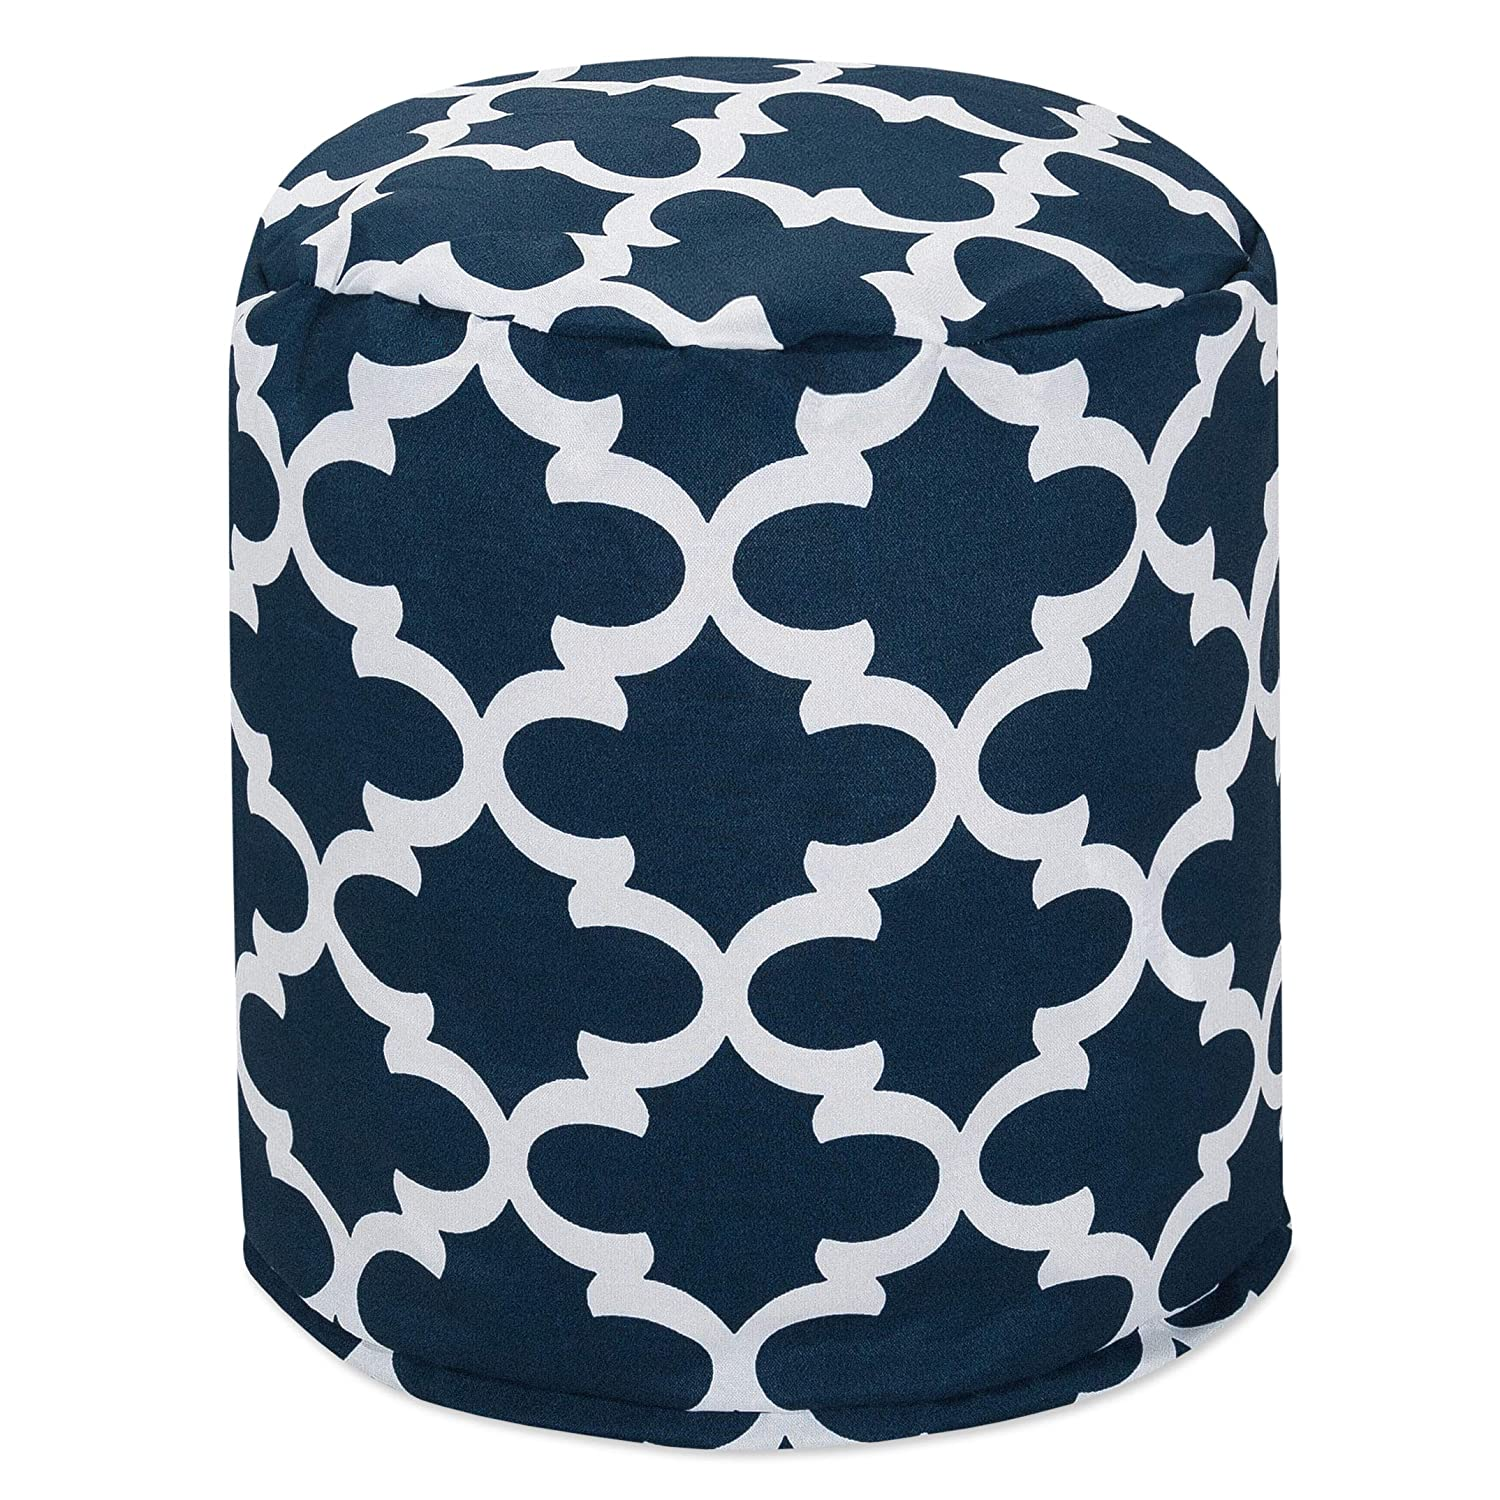 "Majestic Home Goods Navy Trellis Indoor/Outdoor Bean Bag Ottoman Pouf 16"" L x 16"" W x 17"" H"